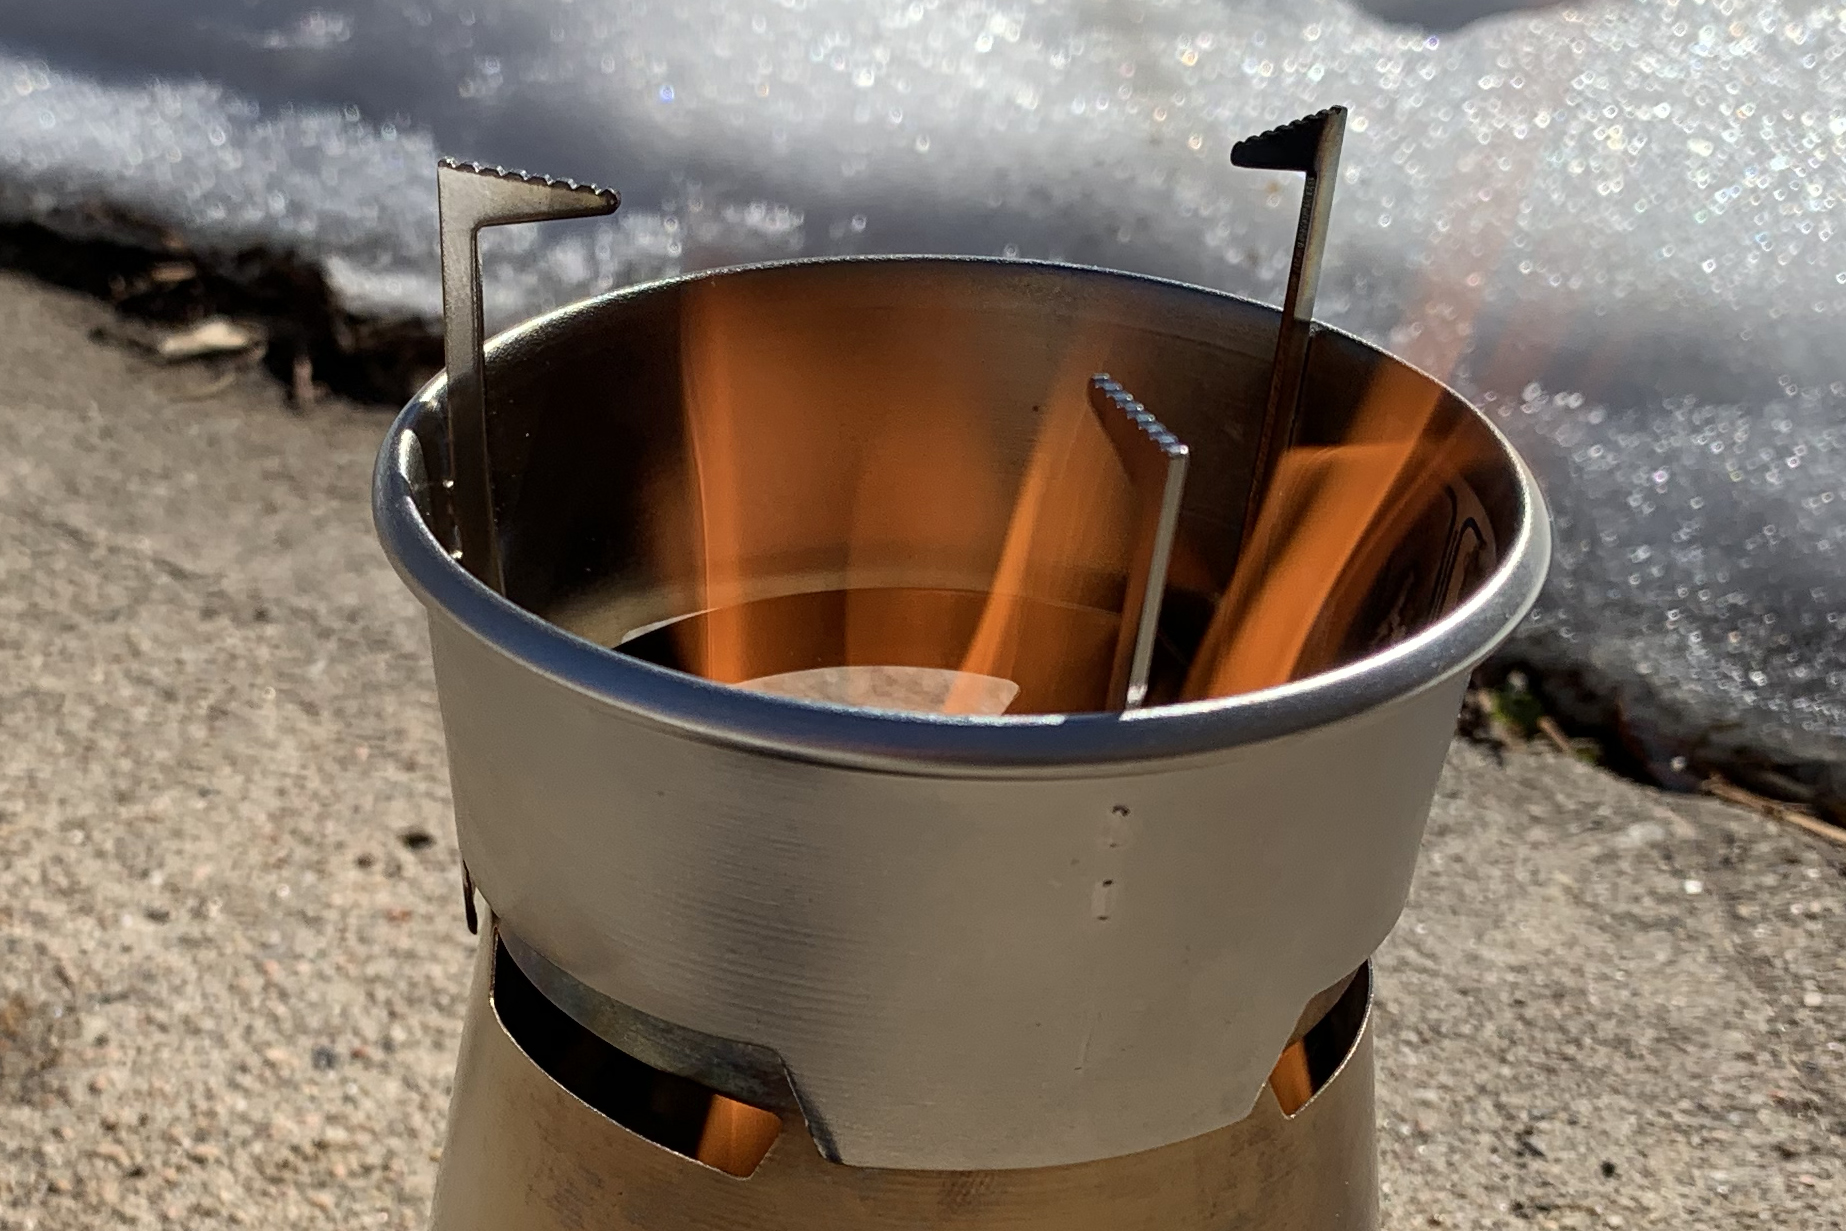 Yvon Chouinard Wanted a Wood Stove, So Patagonia Built One